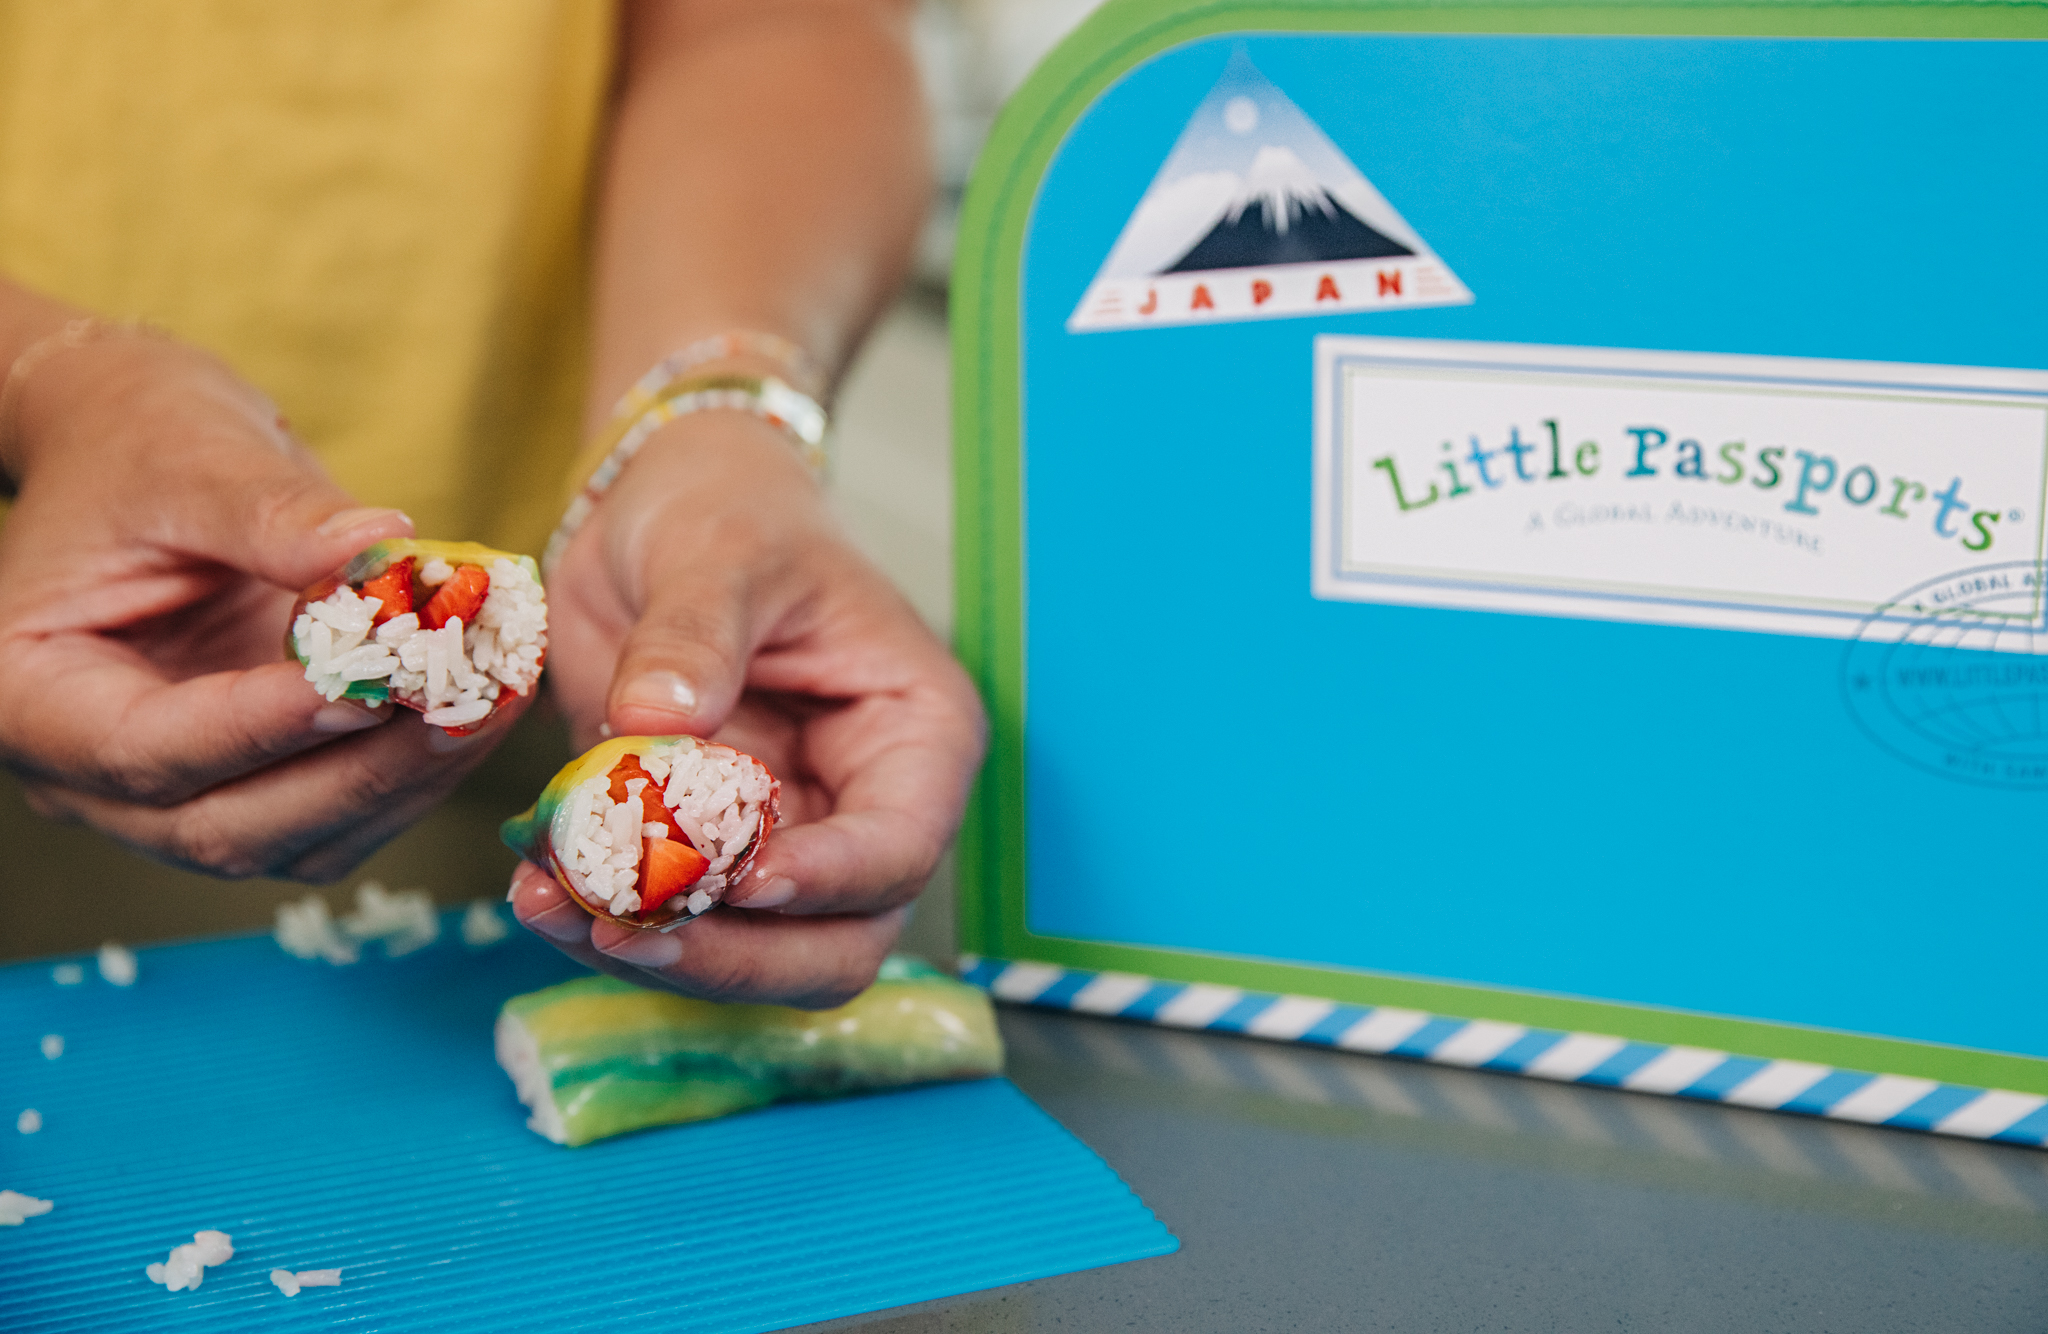 Enjoy the fruit sushi you made with Baby Boy Bakery and Little Passports!